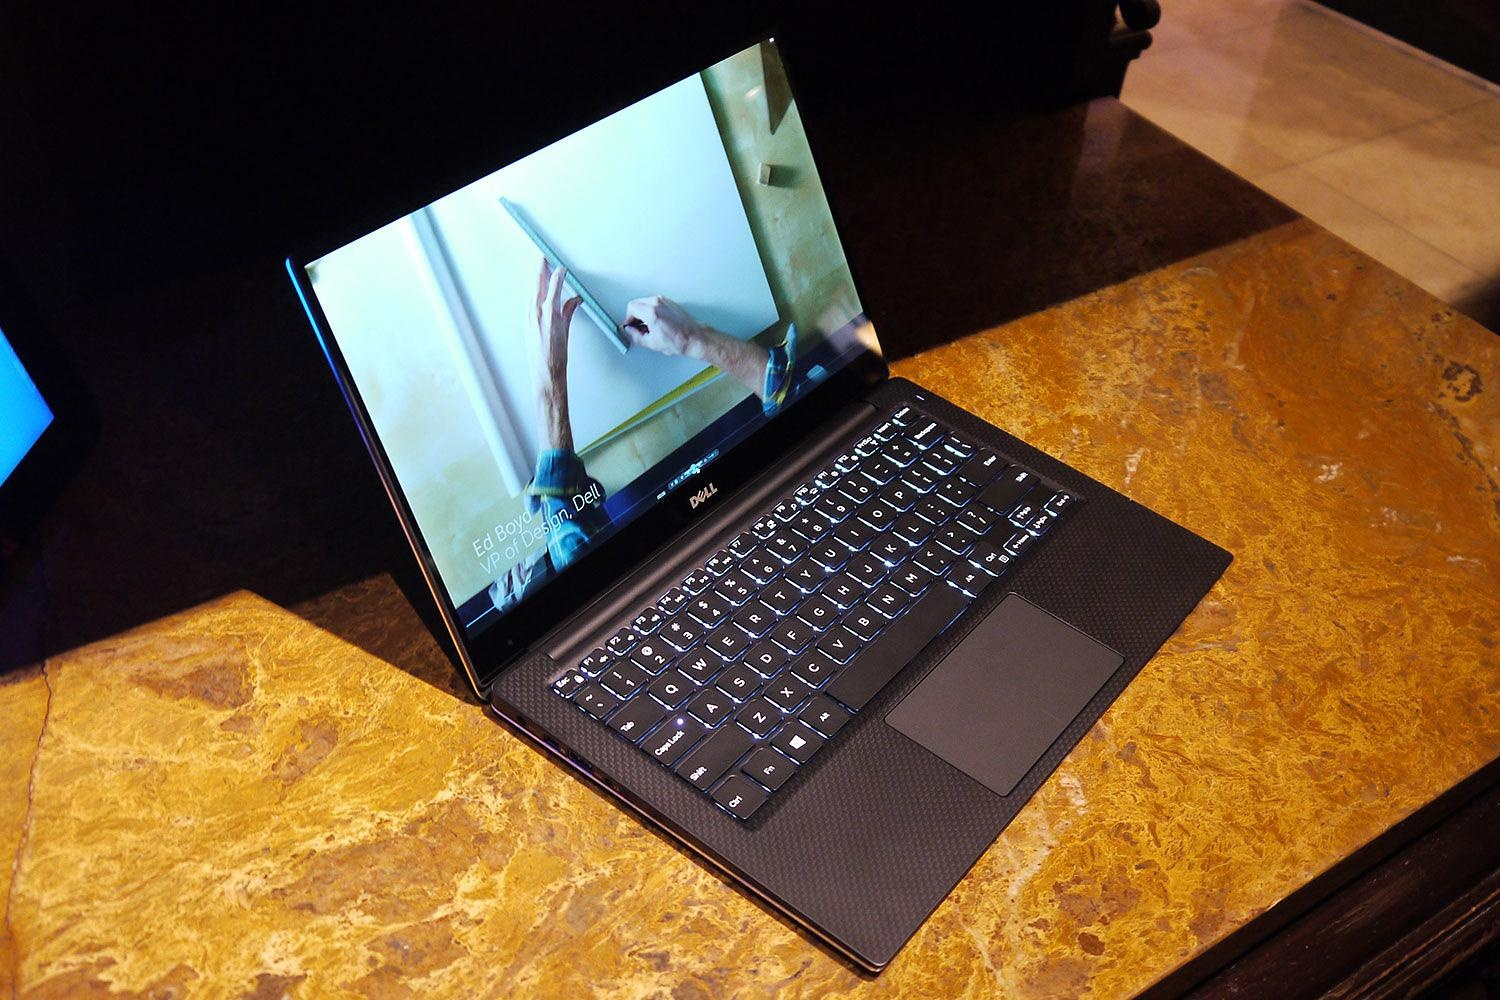 dell-xps-13-hands-on-p1100305-2.jpg